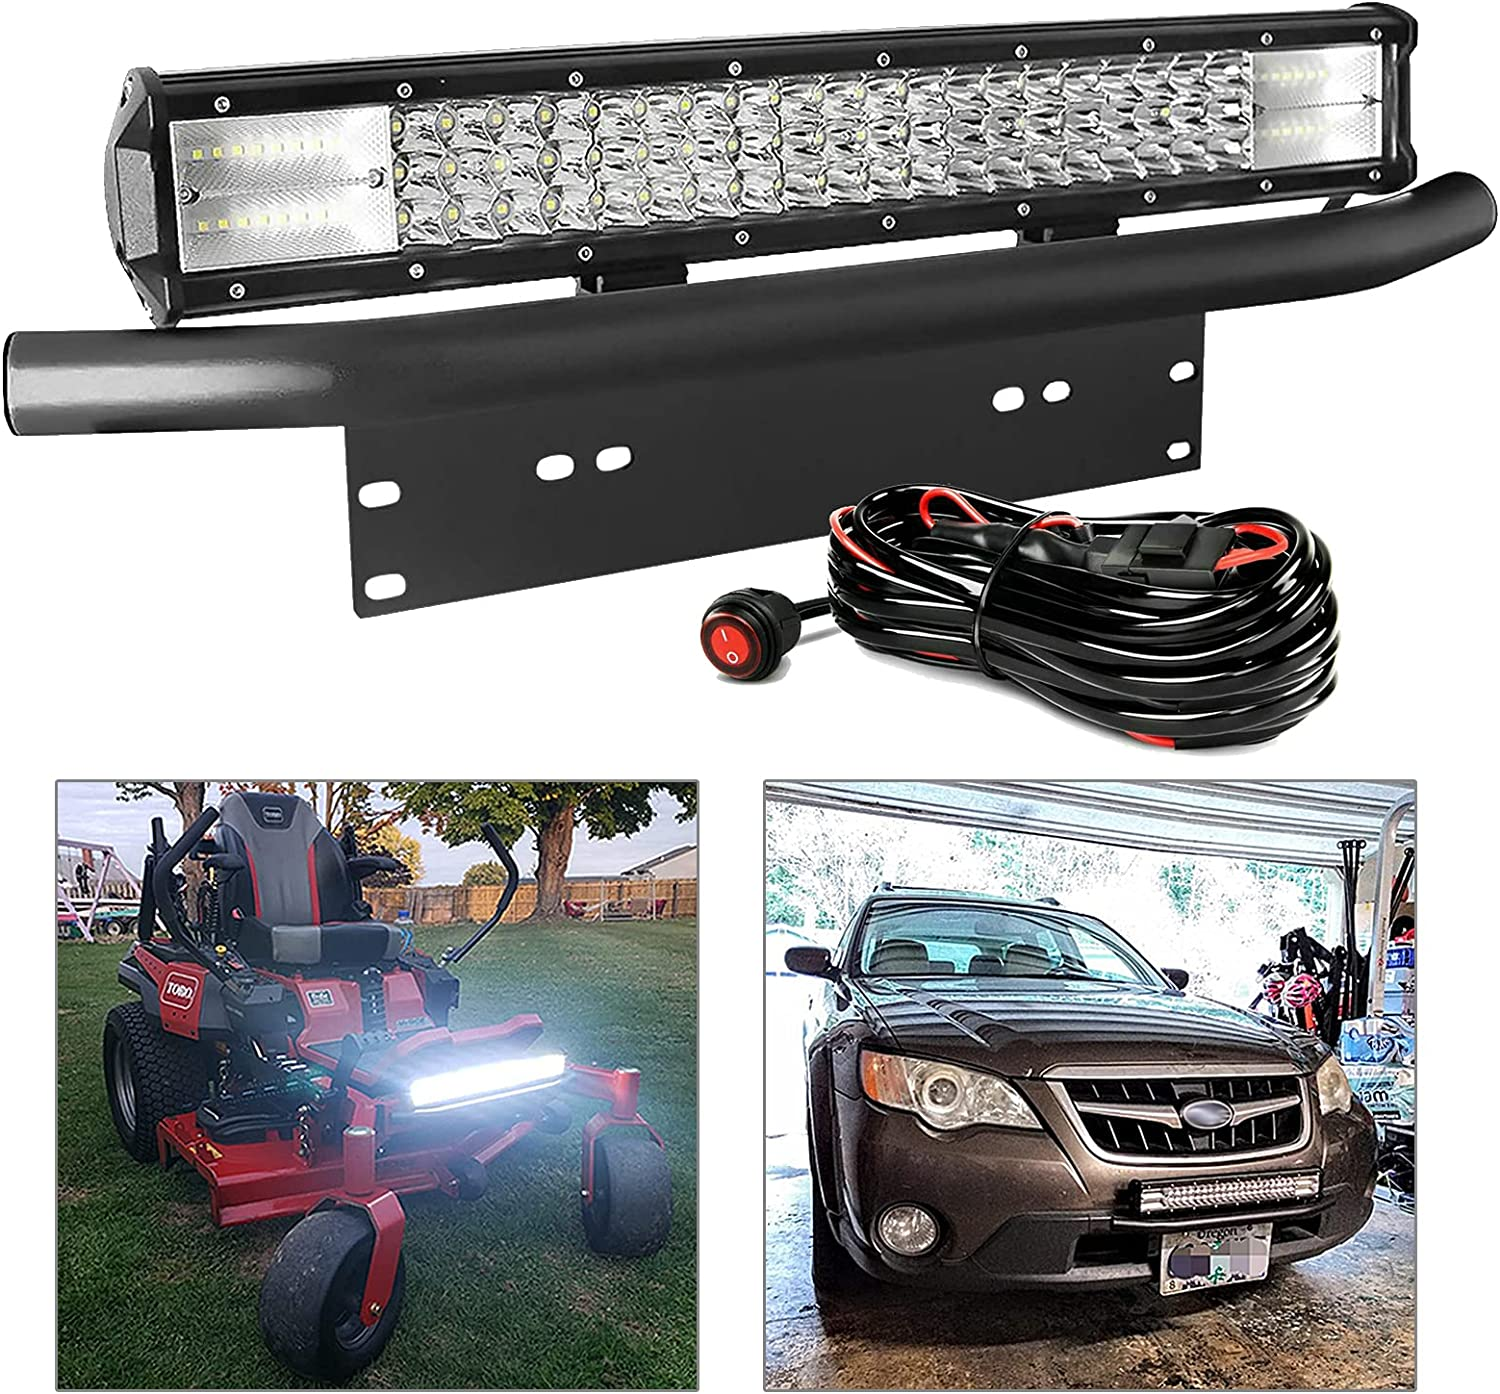 National uniform Arlington Mall free shipping LED Light Bar with Wiring Harness for EBESTauto Kit Compatible